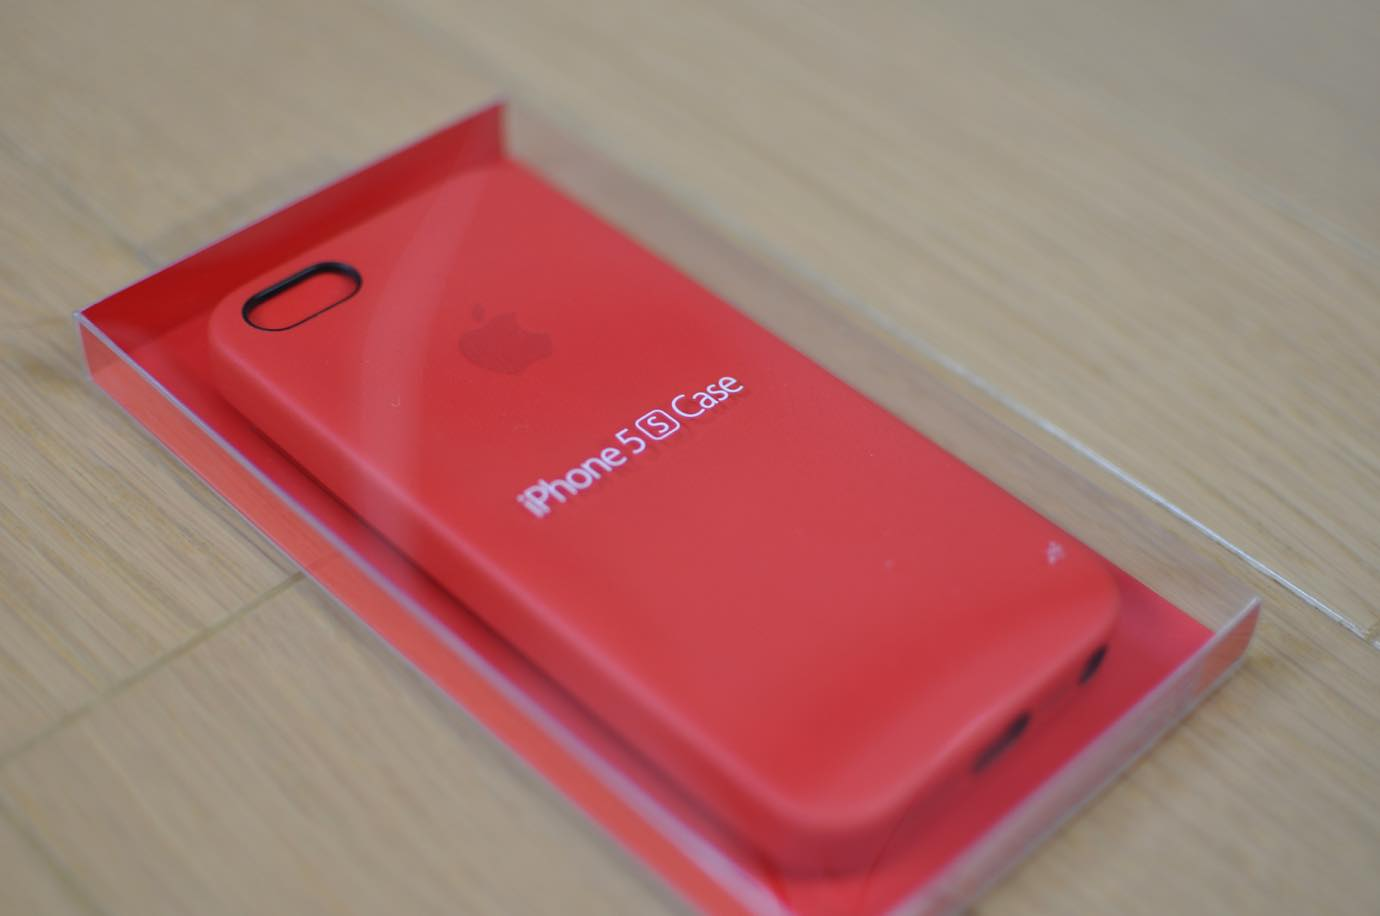 IPhone 5s Case   PRODUCT RED 11 20141215 214945